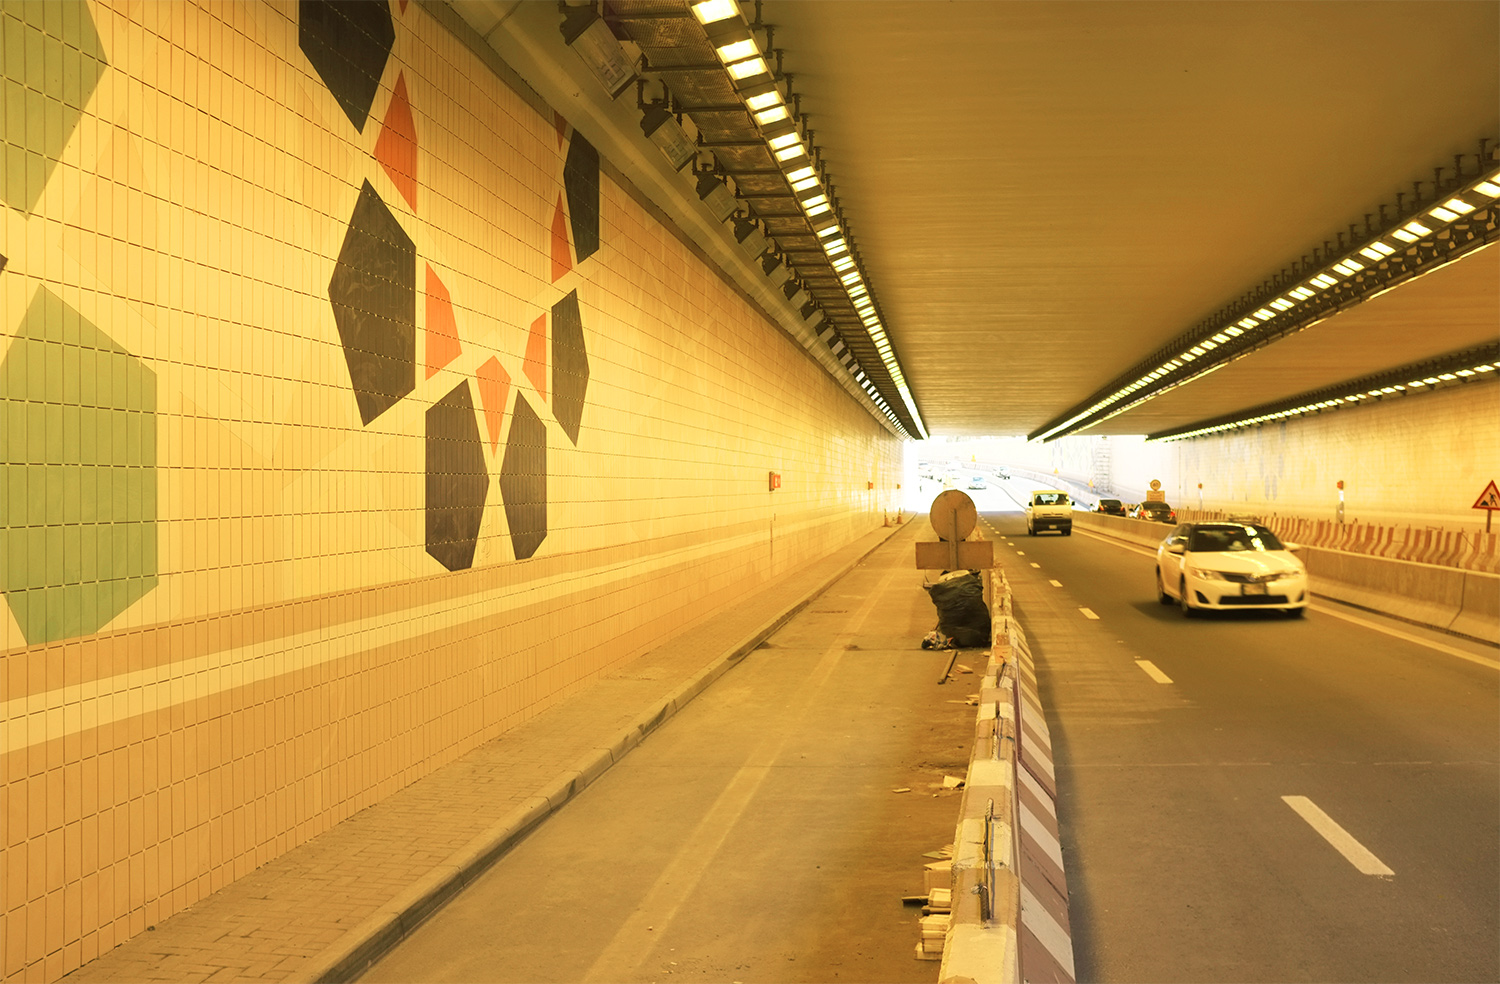 Mashrabiya tiling pattern    West Underpass connecting DIFC and Business Bay, Dubai   Research image